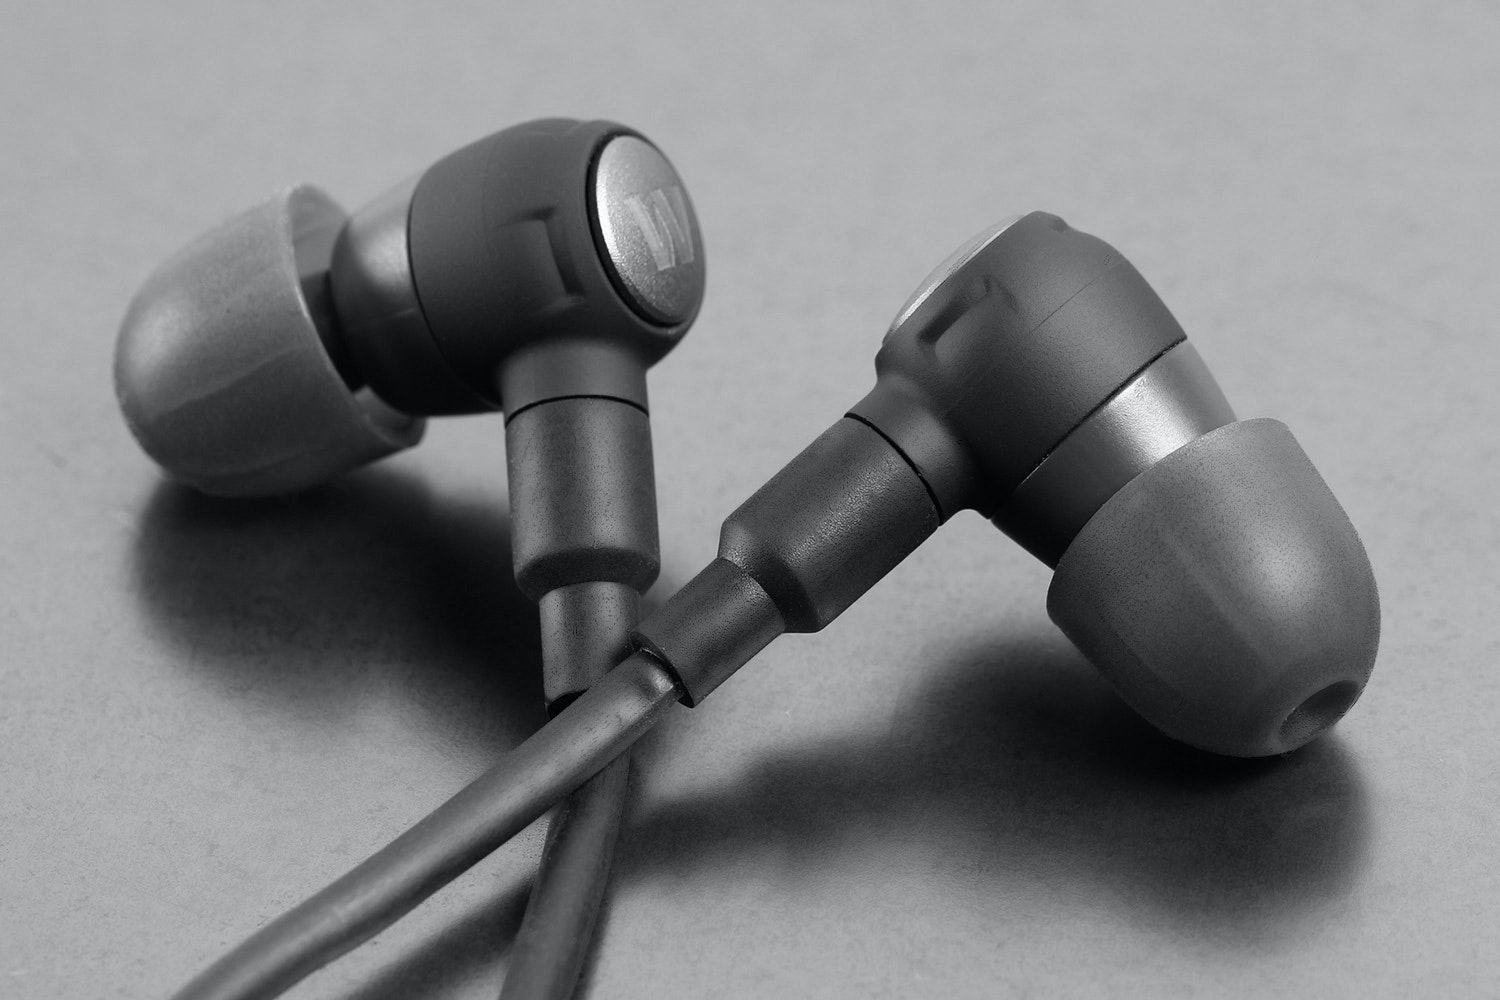 Westone Adventure Series Beta Earphones